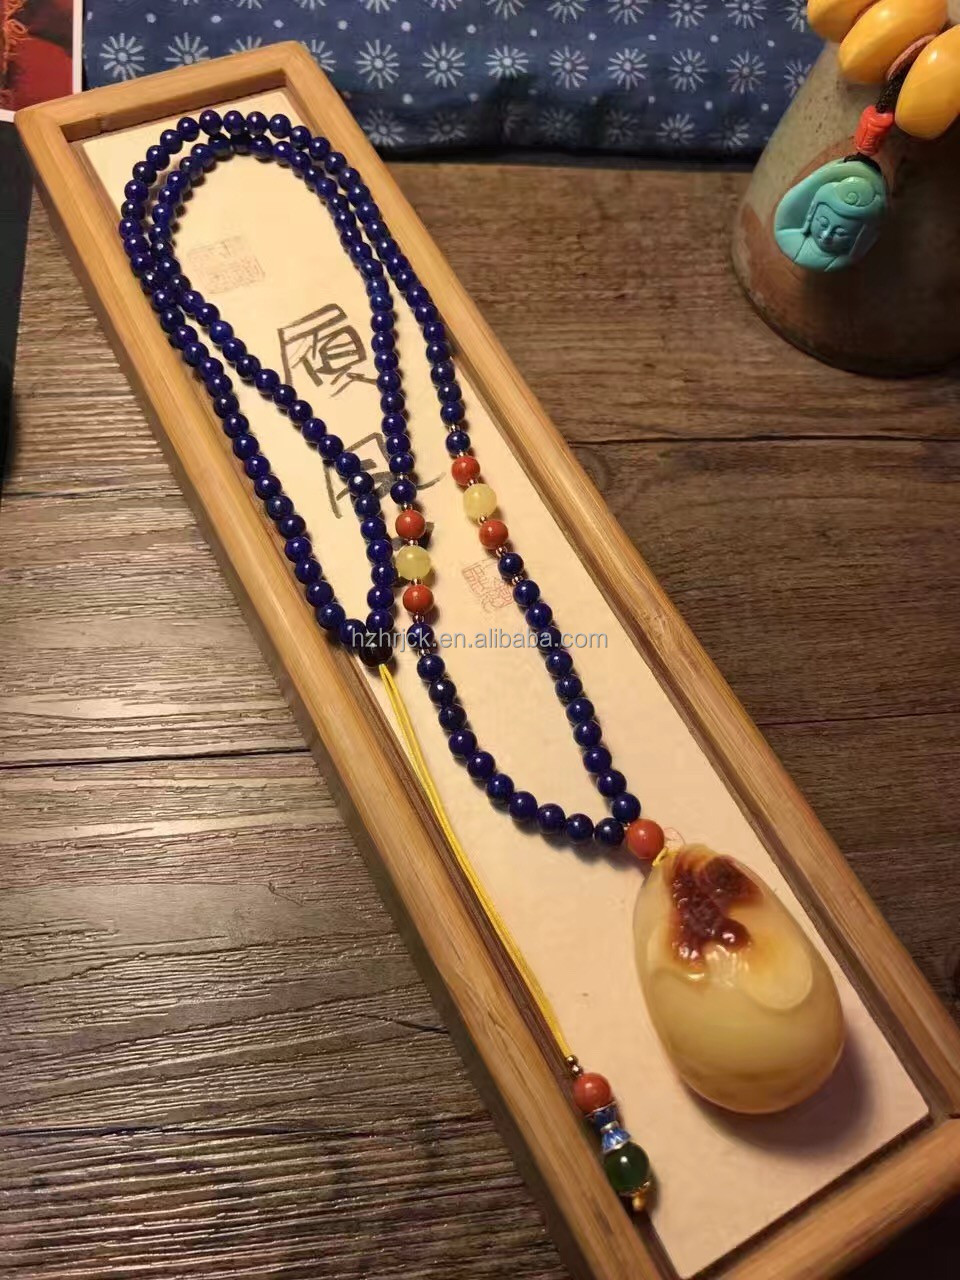 2017 latest design blood amber necklace green jade dark blue beads necklace jewelry latest design beads necklace